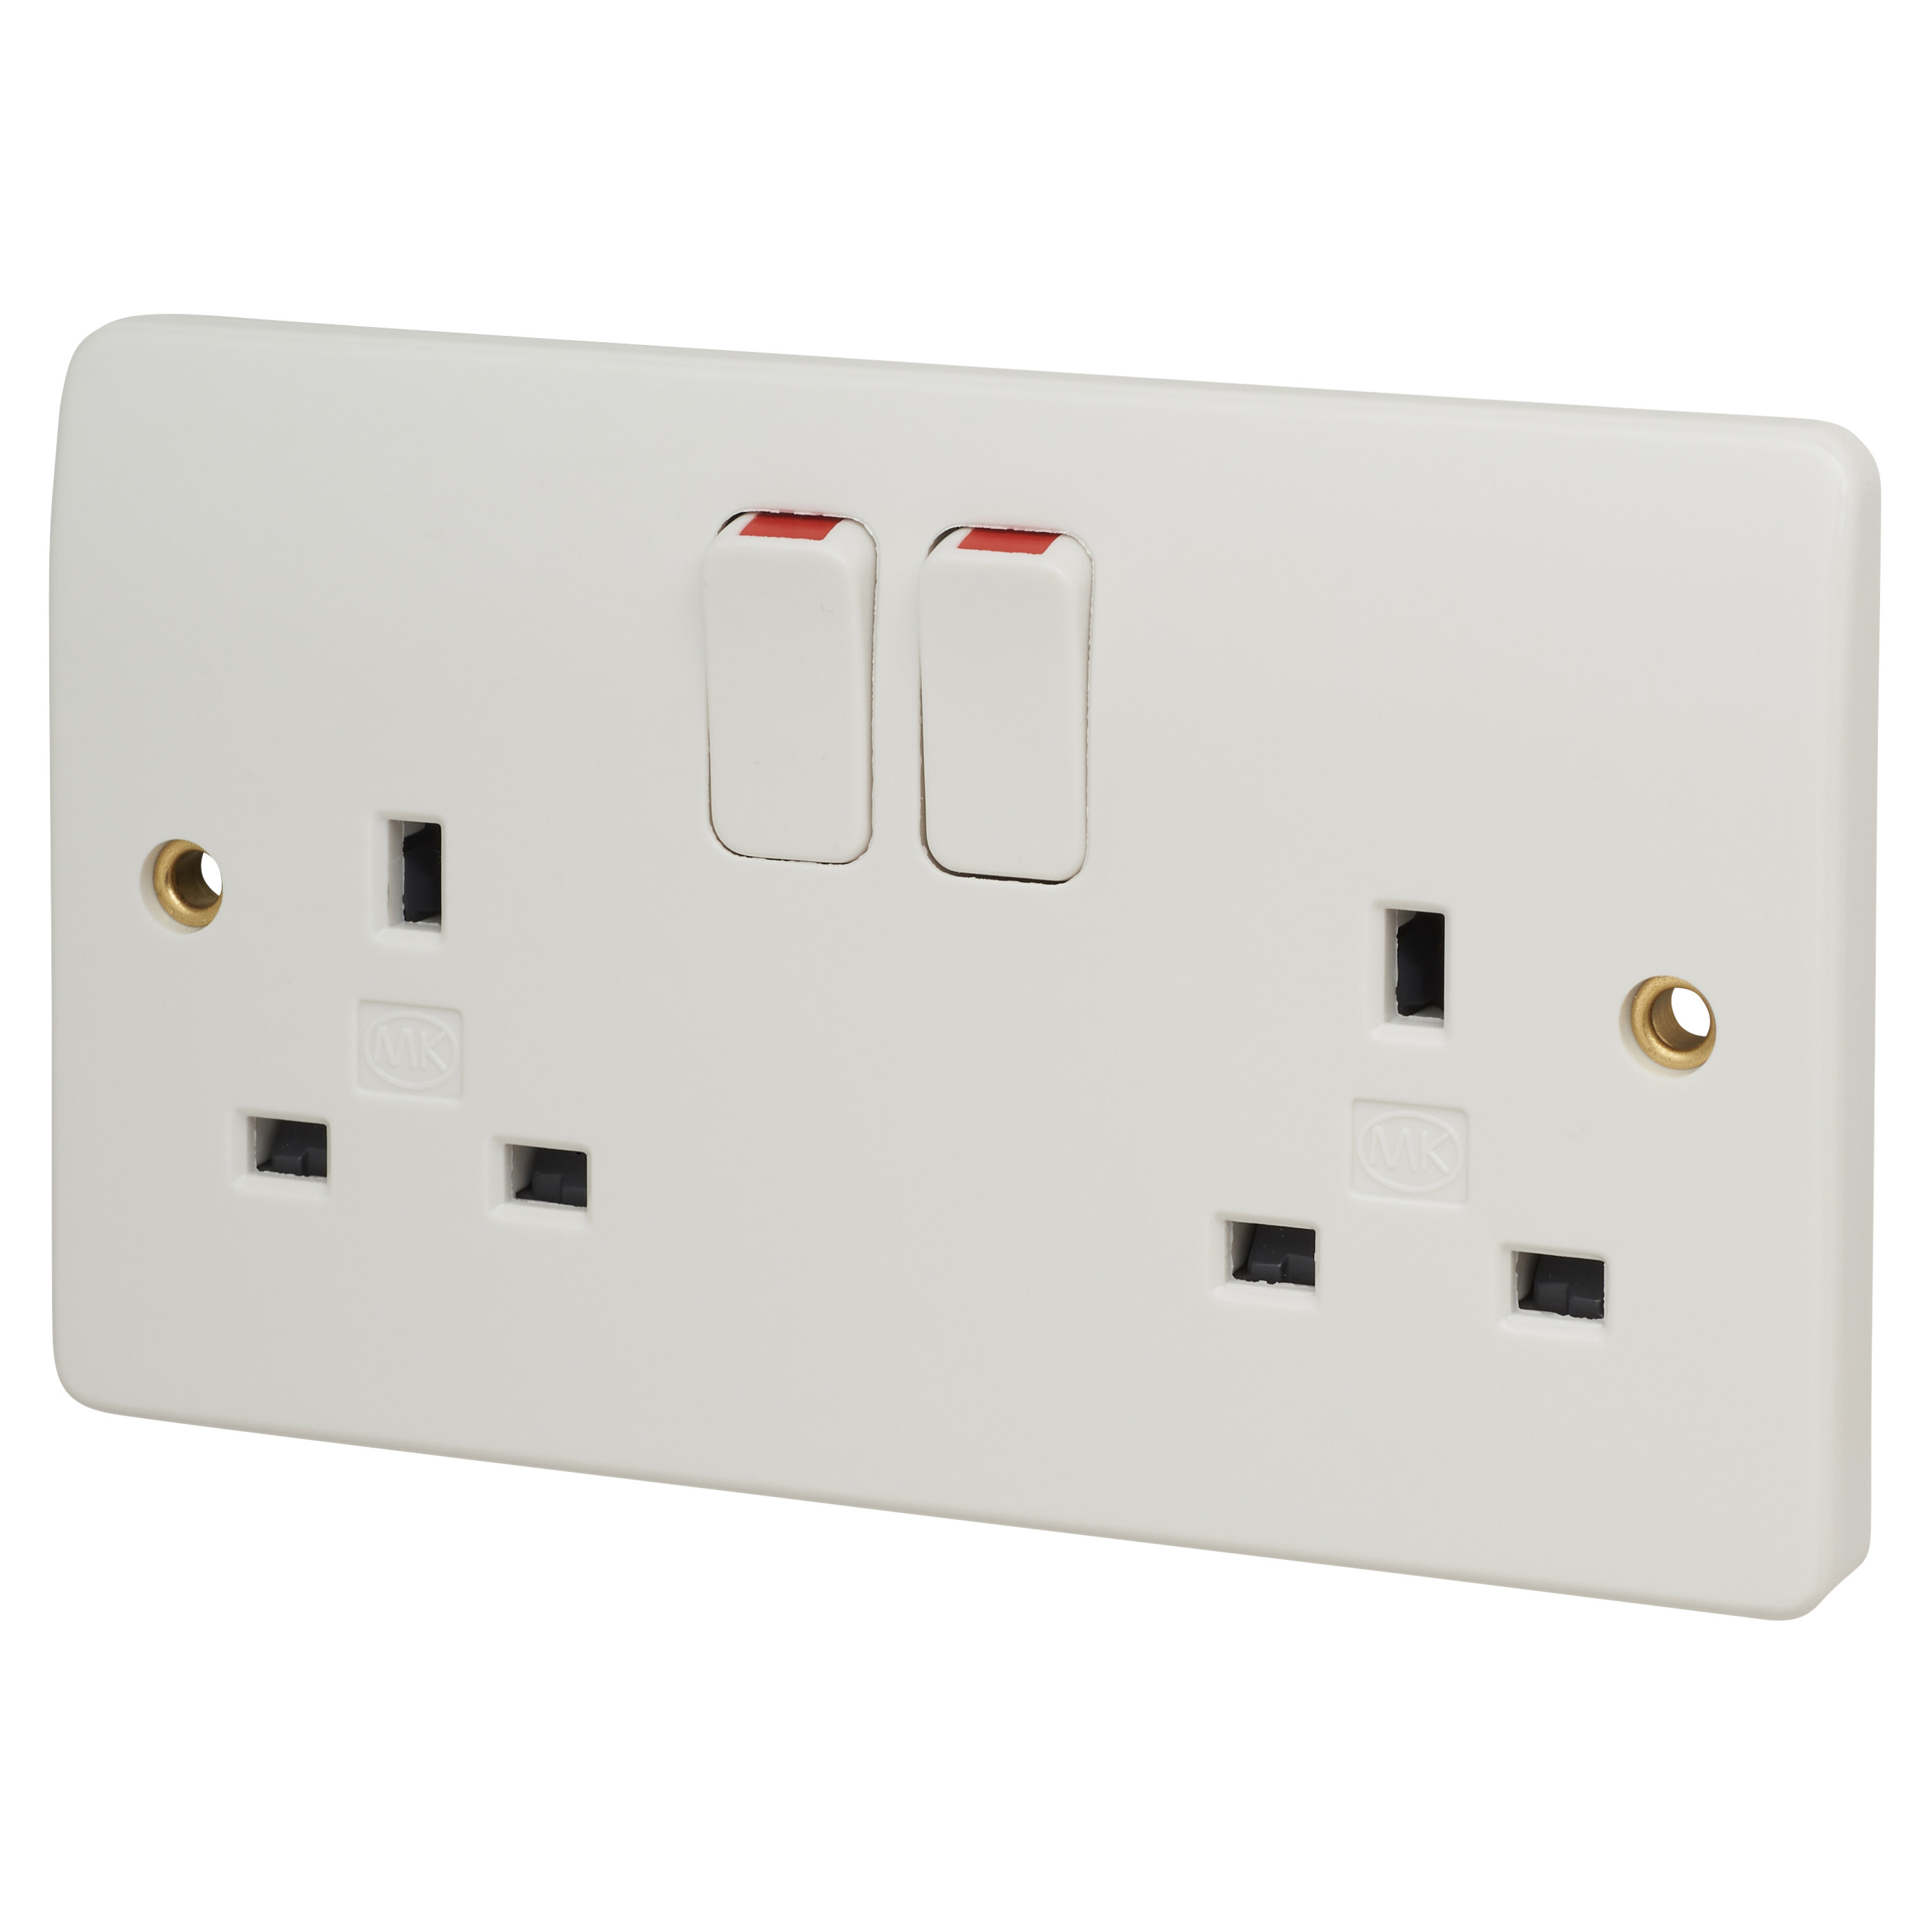 MK Logic Plus 13A 2 Gang Double Pole Switched Socket - White)